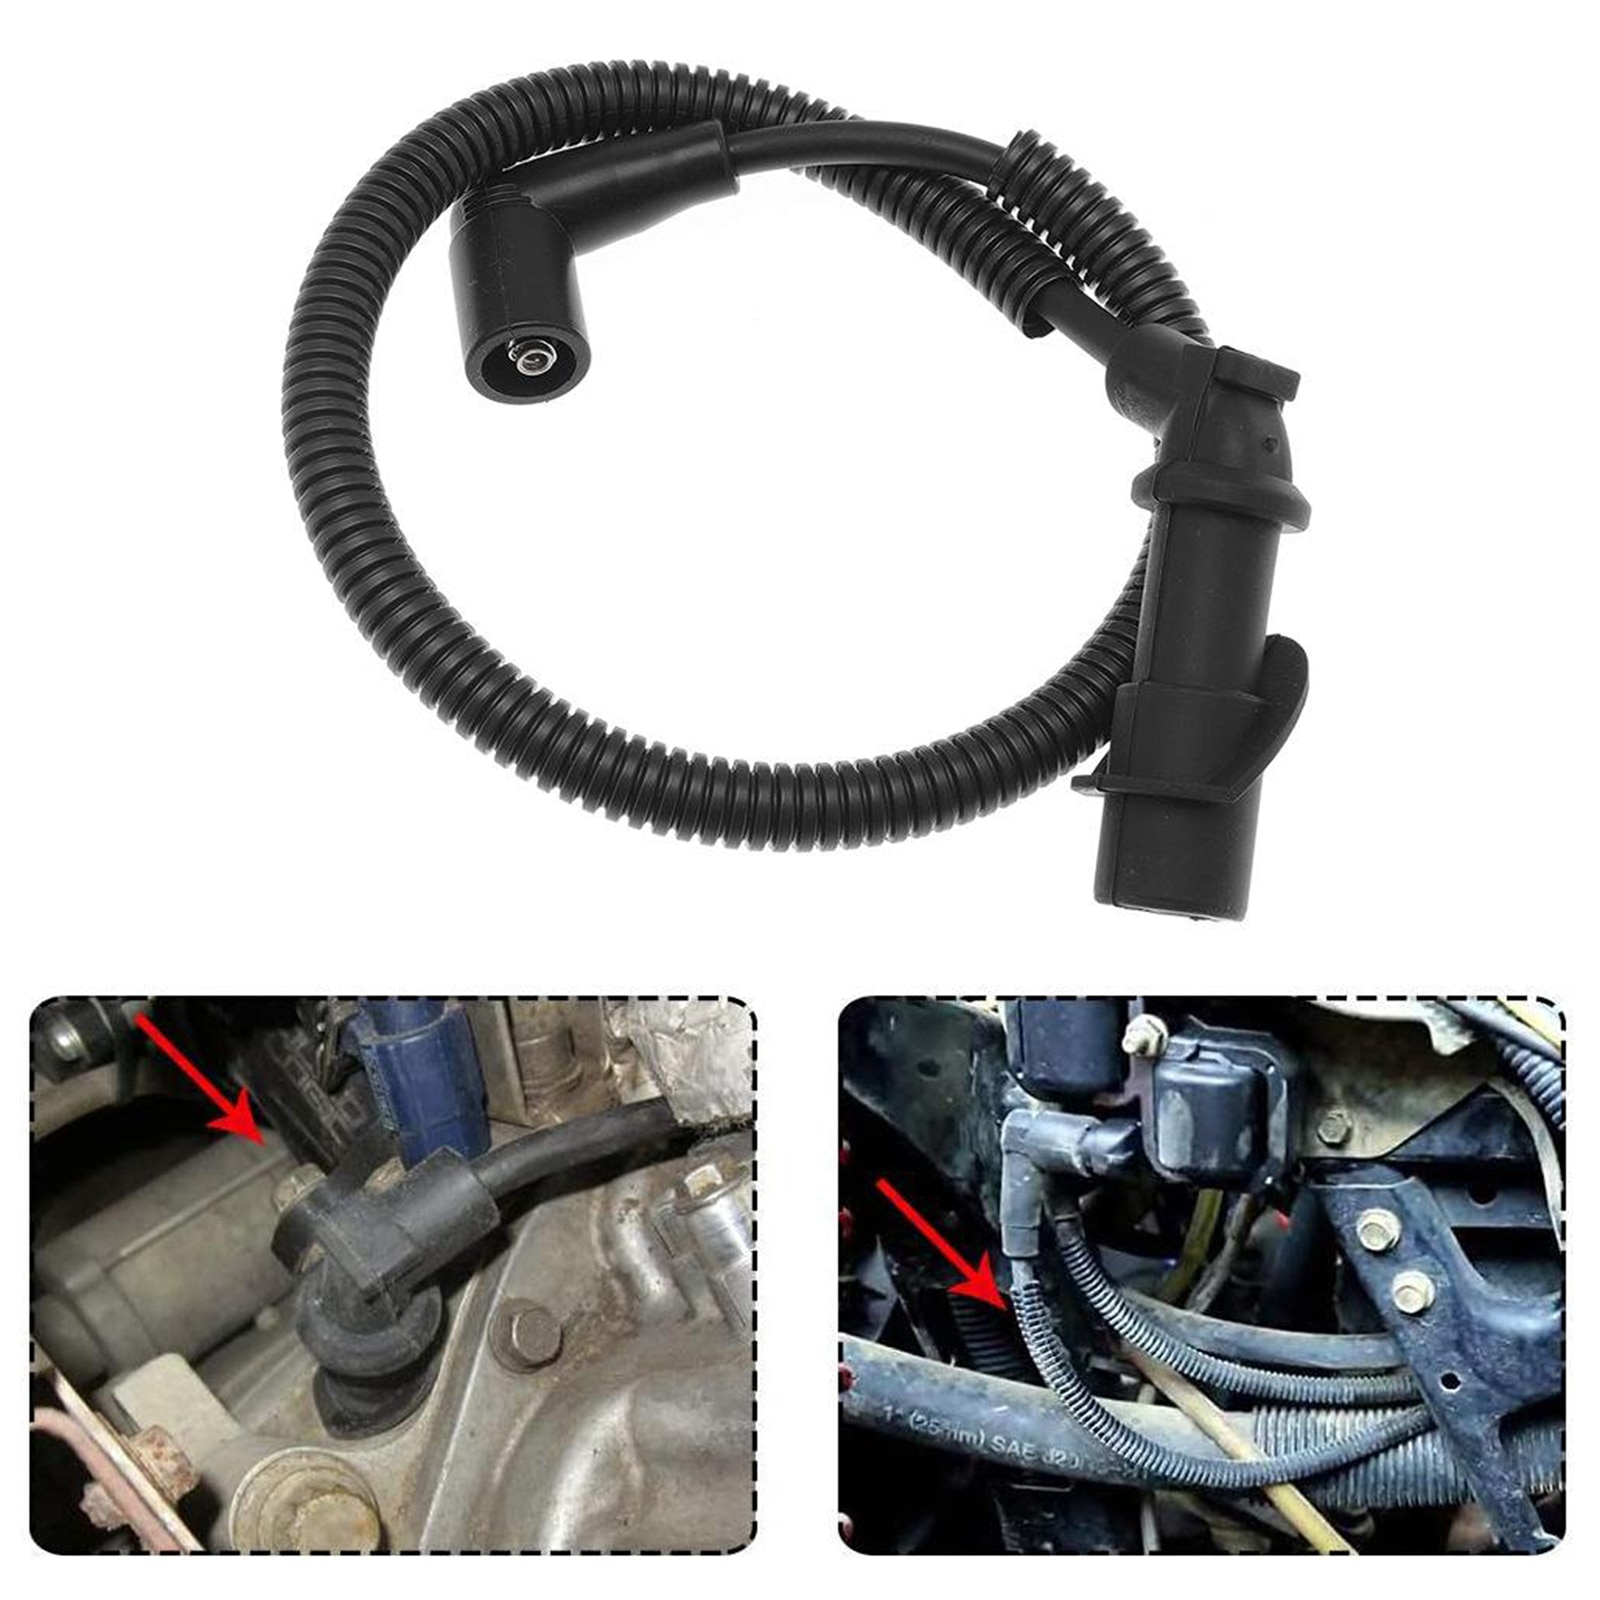 2Pcs Spark Plug Ignition Coil Wires for Polaris Ranger Crew 700 2009 High quality Simple Installation onesimus ignition cable set oem 90919 21557 high quality spark plug wire set for toyota